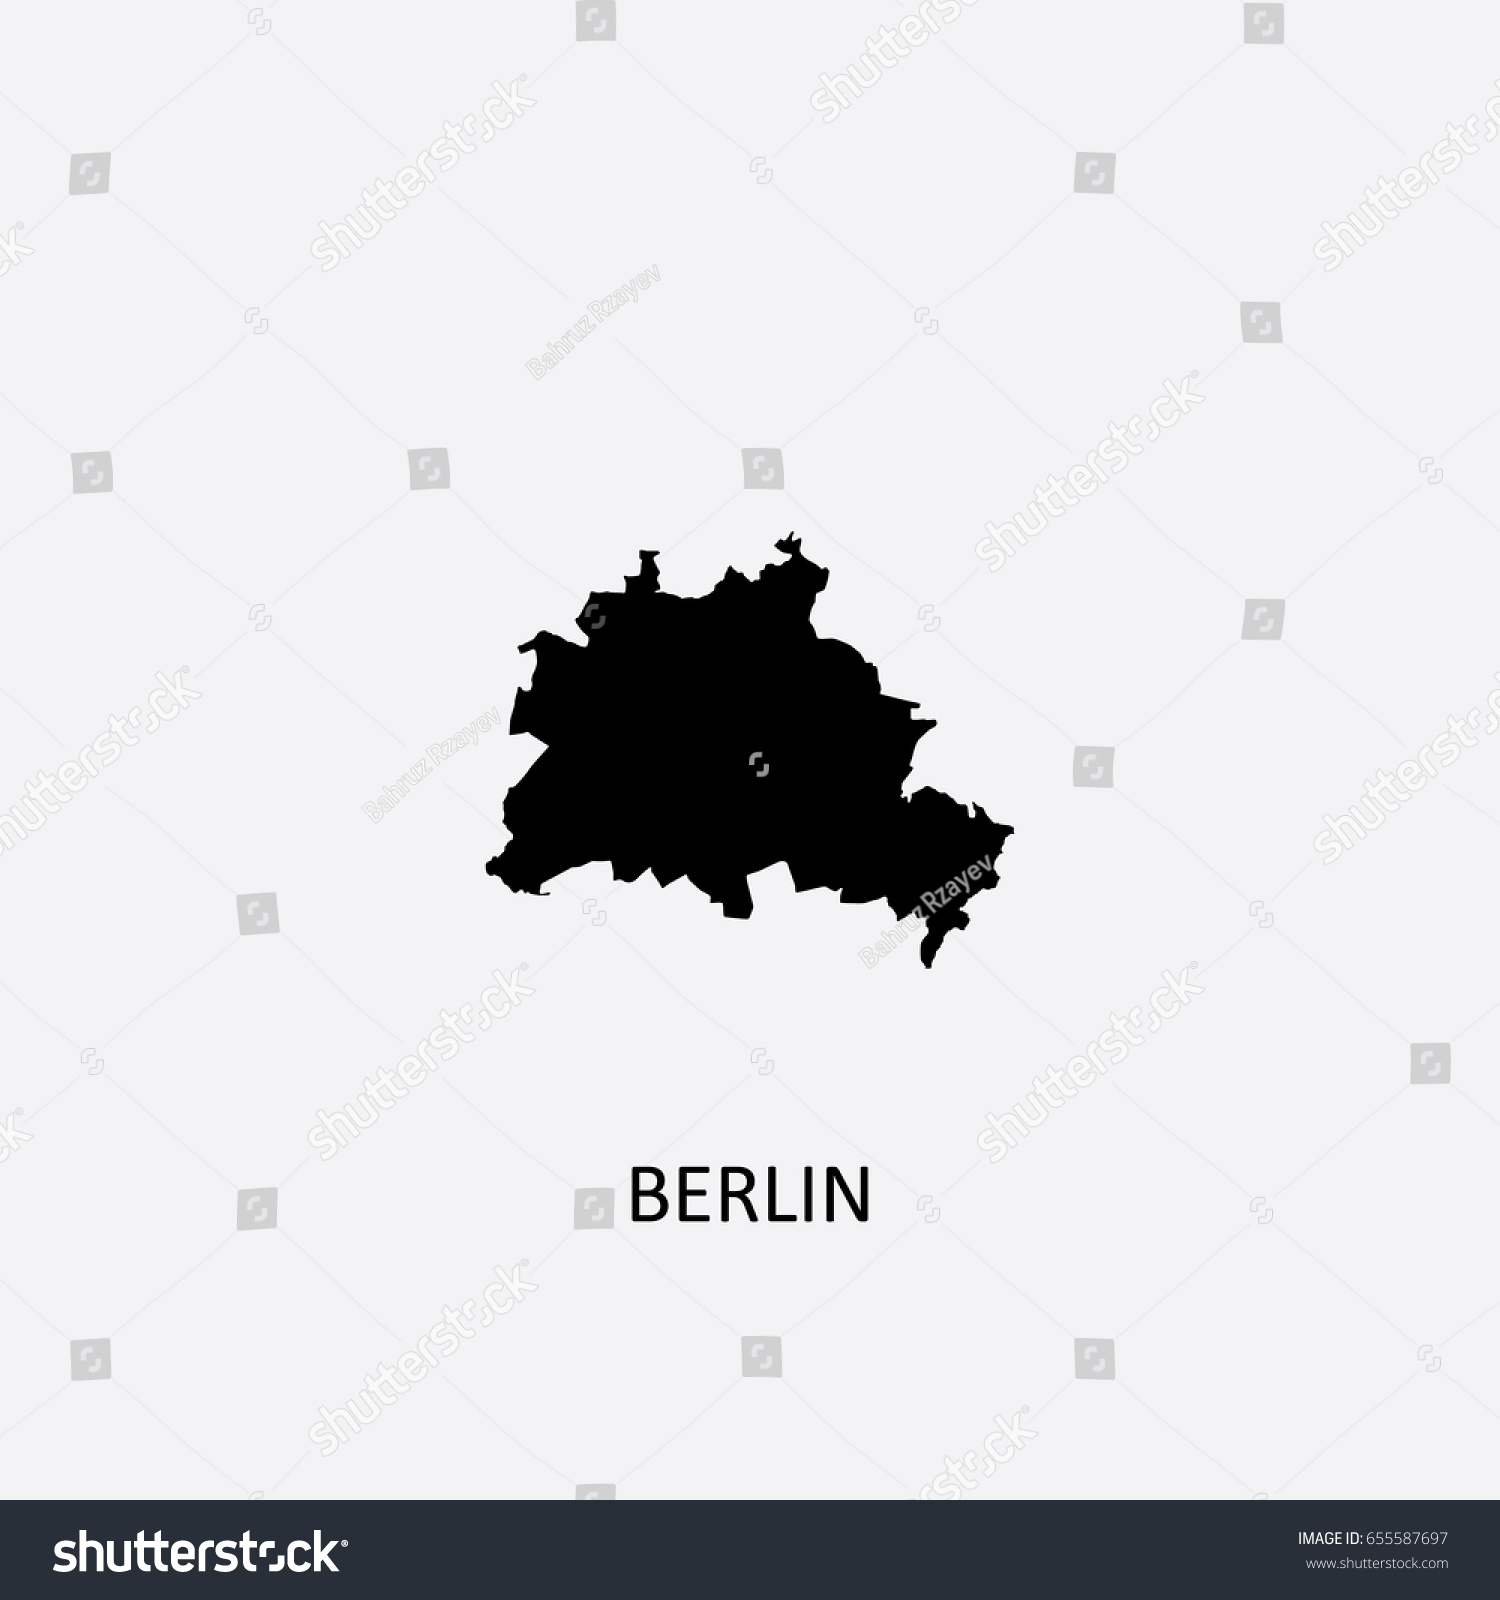 FileBerlin Administrative Divisions Districts Boroughs Pop Berlin - Germany map vector